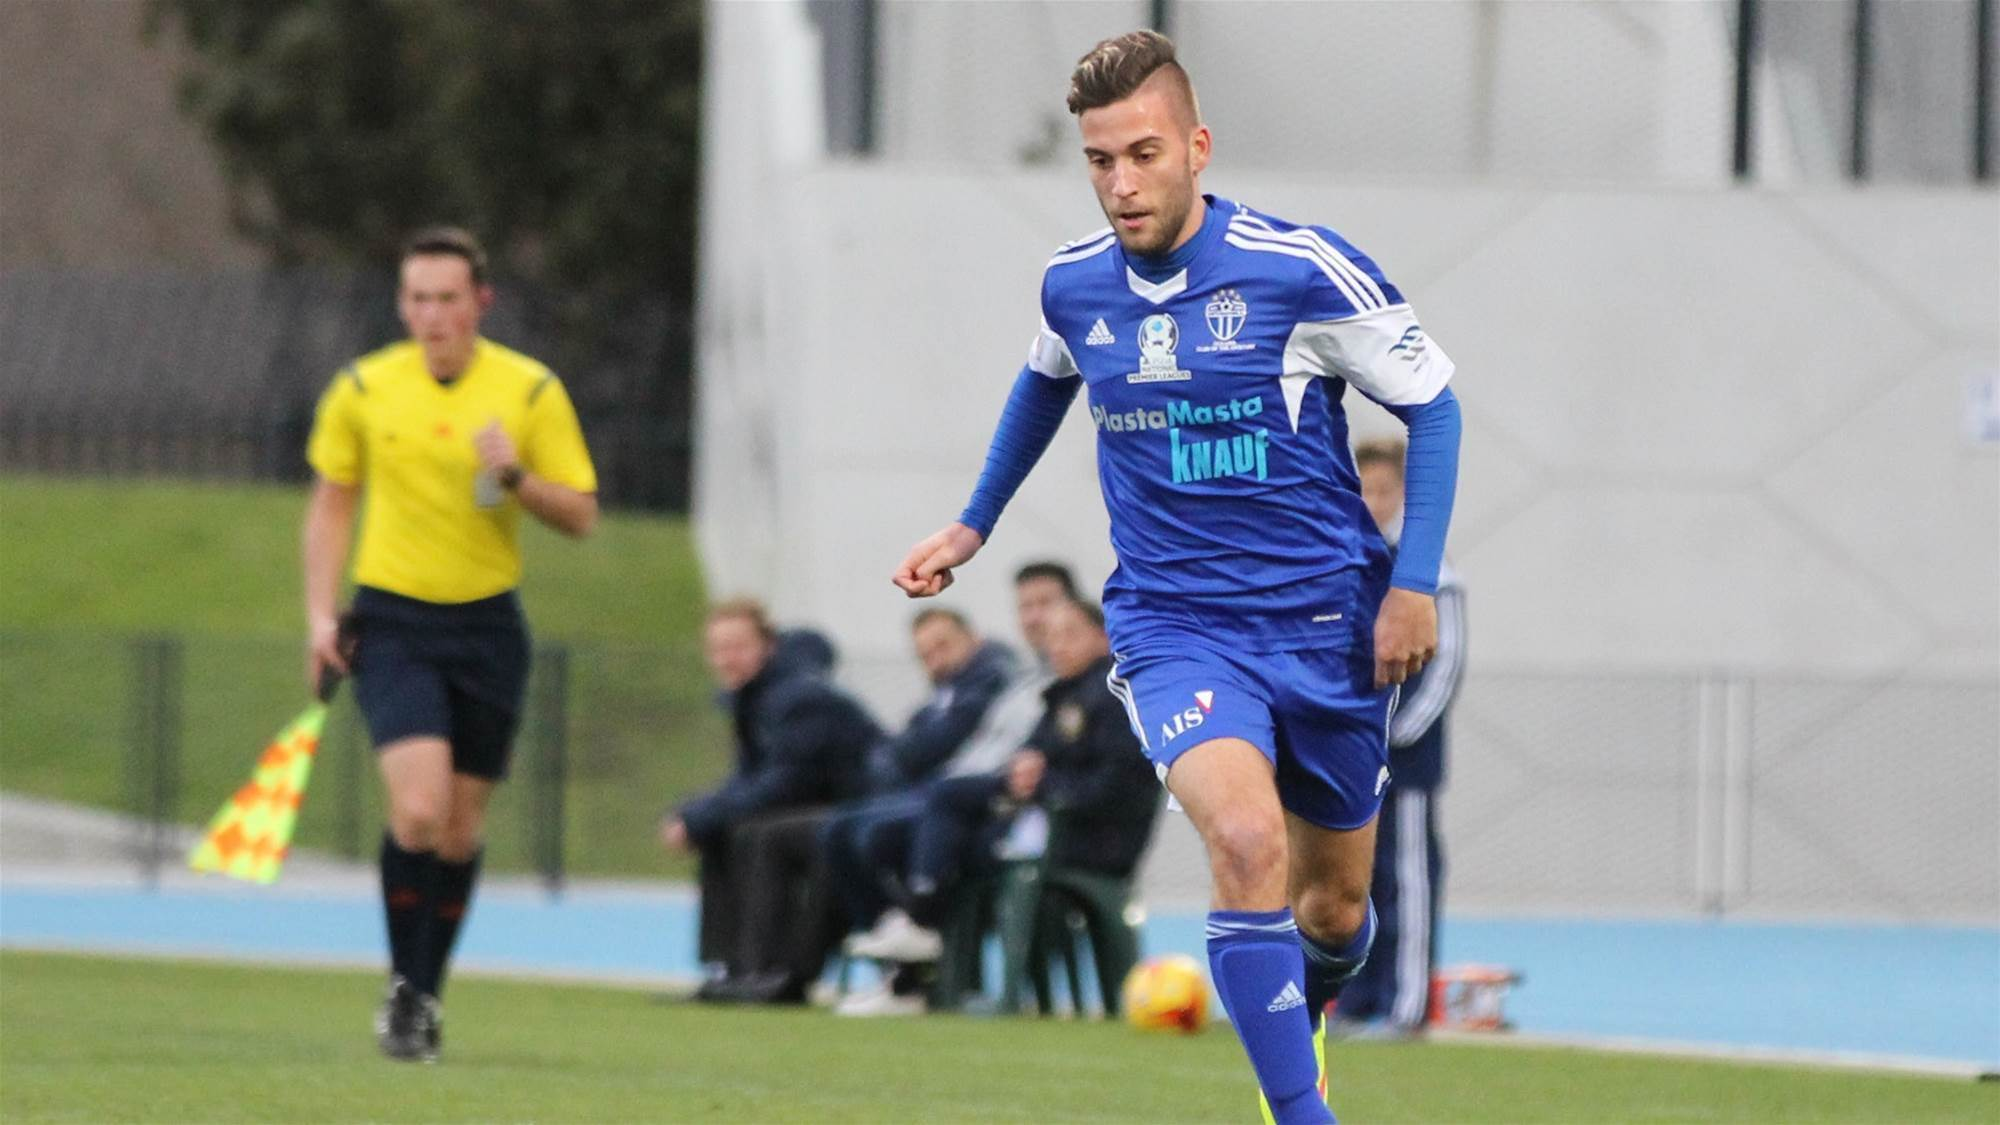 South Melbourne: It's our time for FFA Cup magic